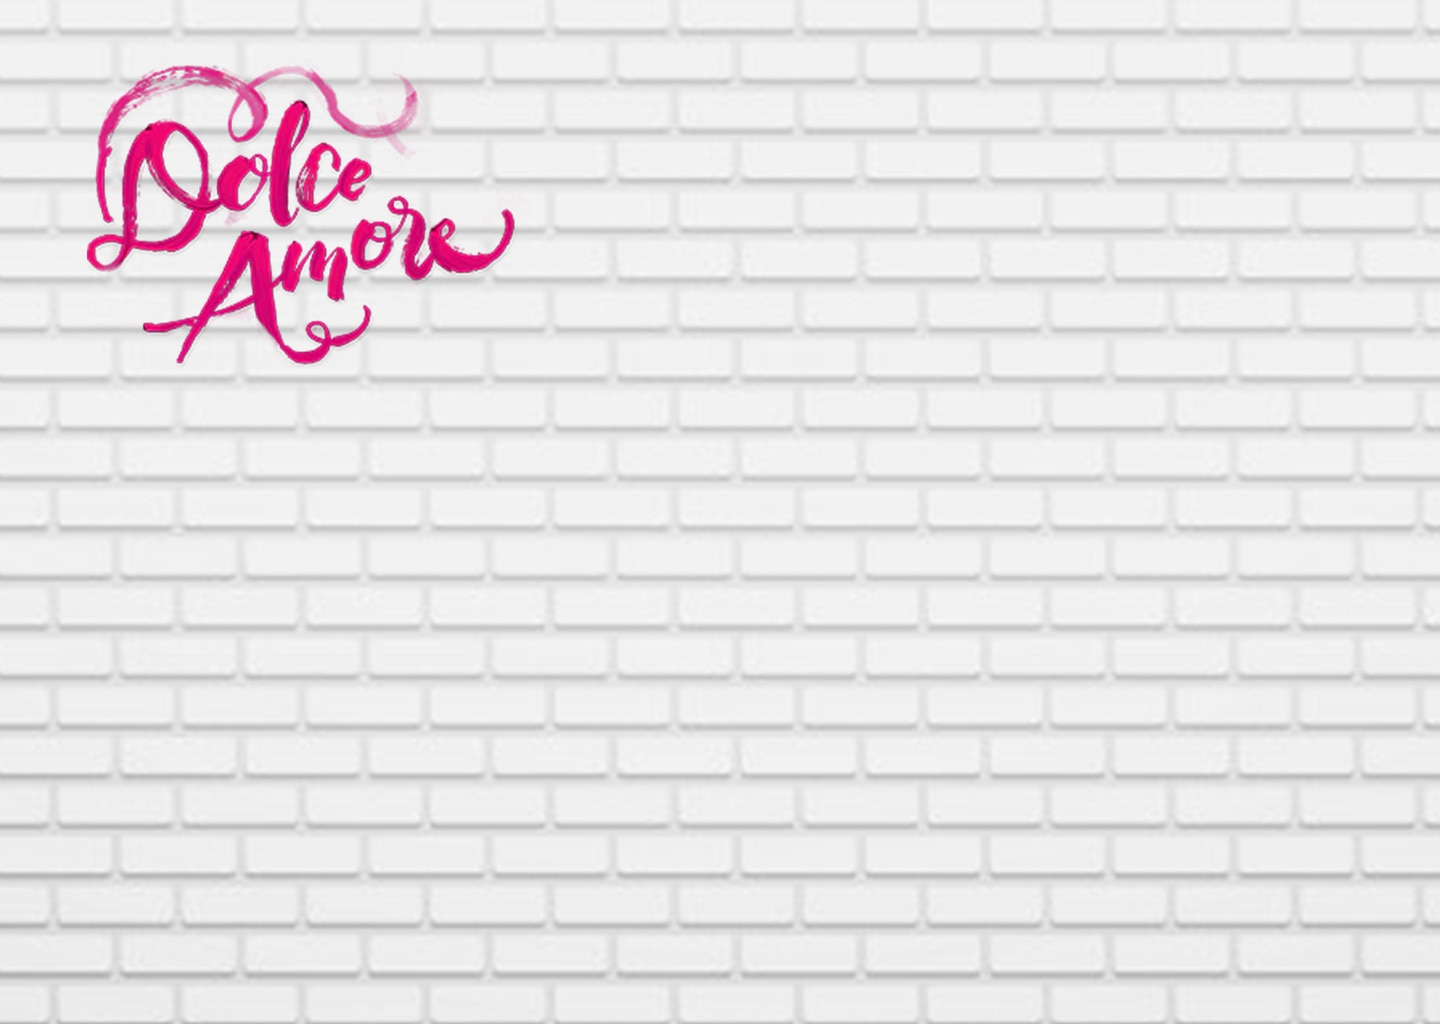 Dolce Amore Entertainment ABS-CBN